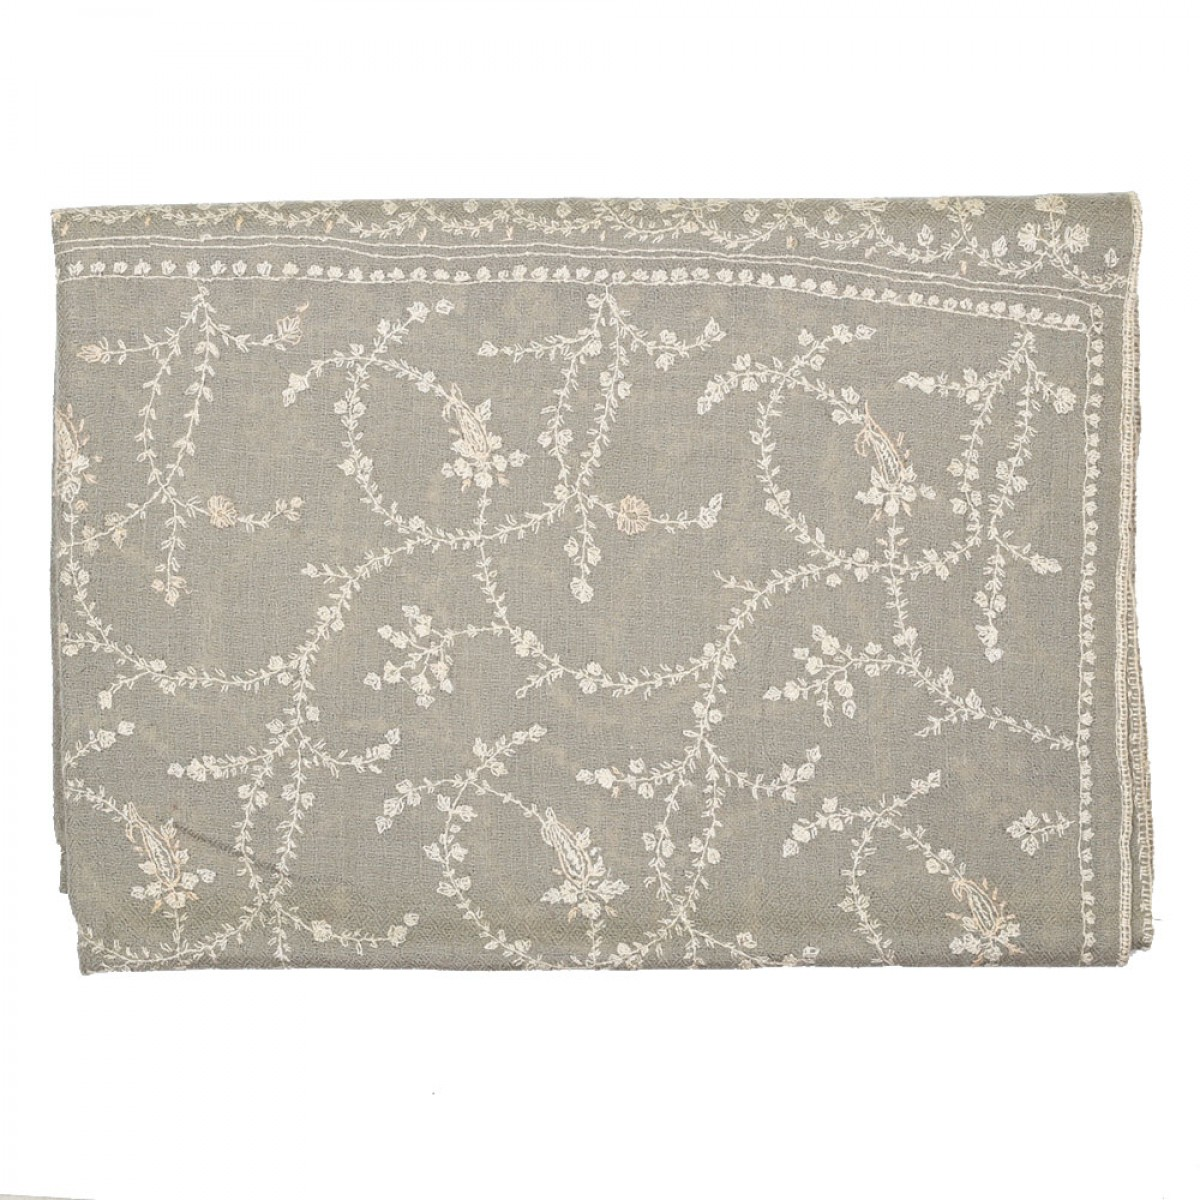 Embroidered Handloom Pashmina Stole - Taupe